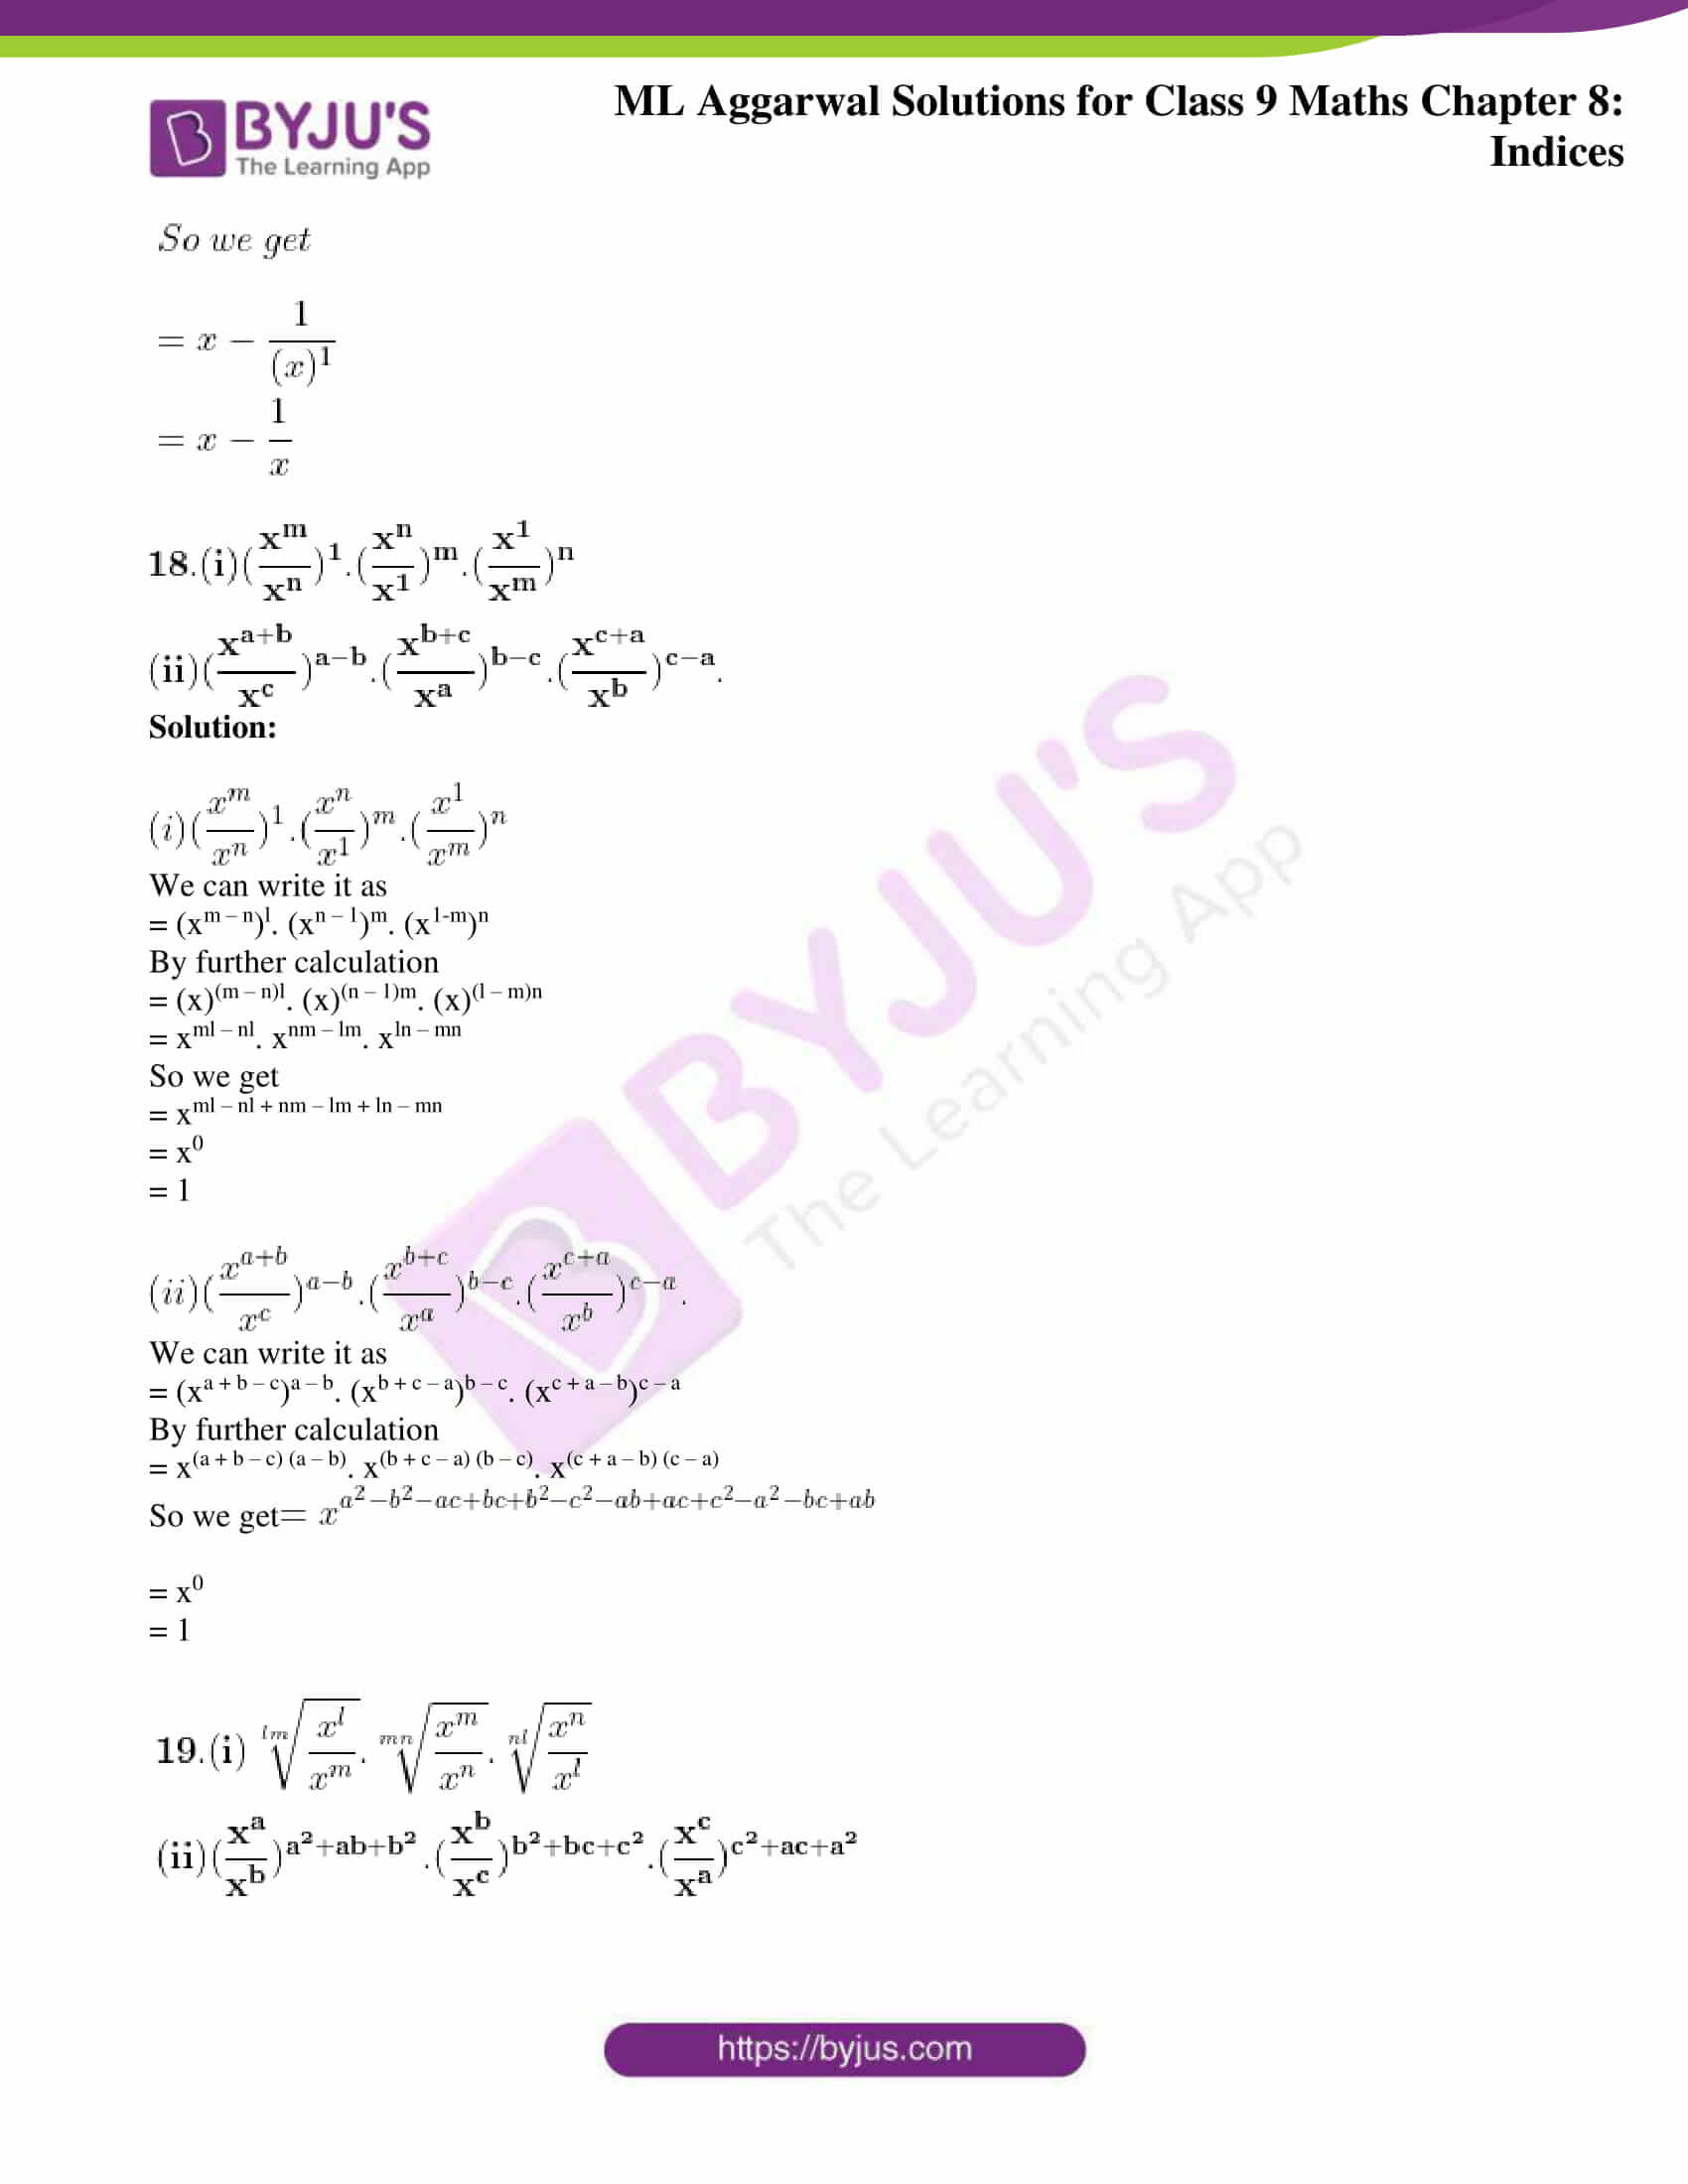 ml aggarwal solutions for class 9 maths chapter 8 20